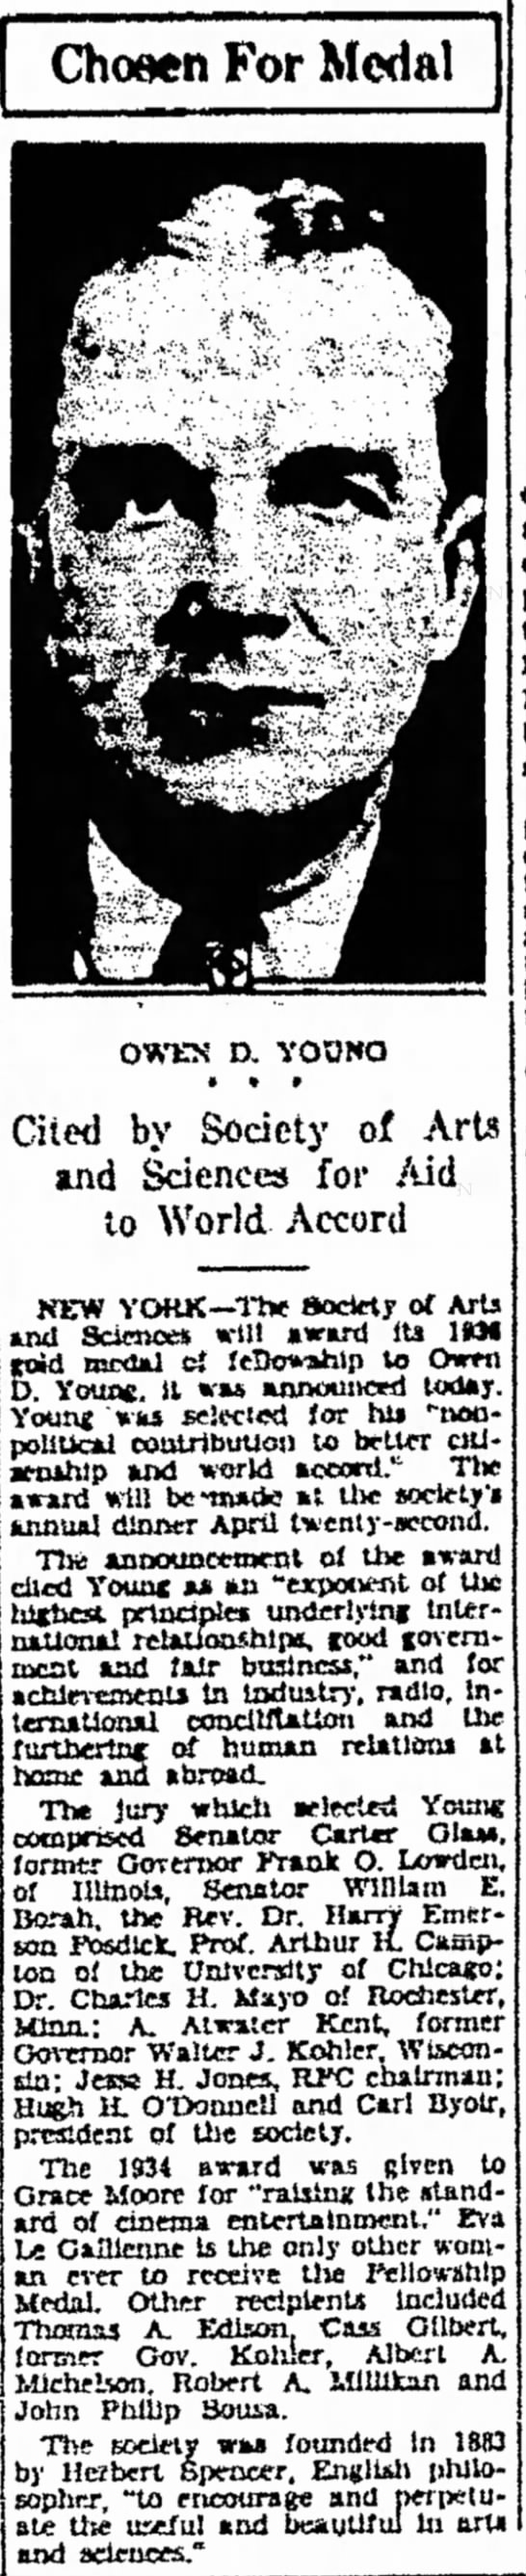 Middletown Times Herald (Middletown, New York) 17 March 1936  Page 7 - Choaen For Modal **» ti* ^ Time D. VOOWG Cited...